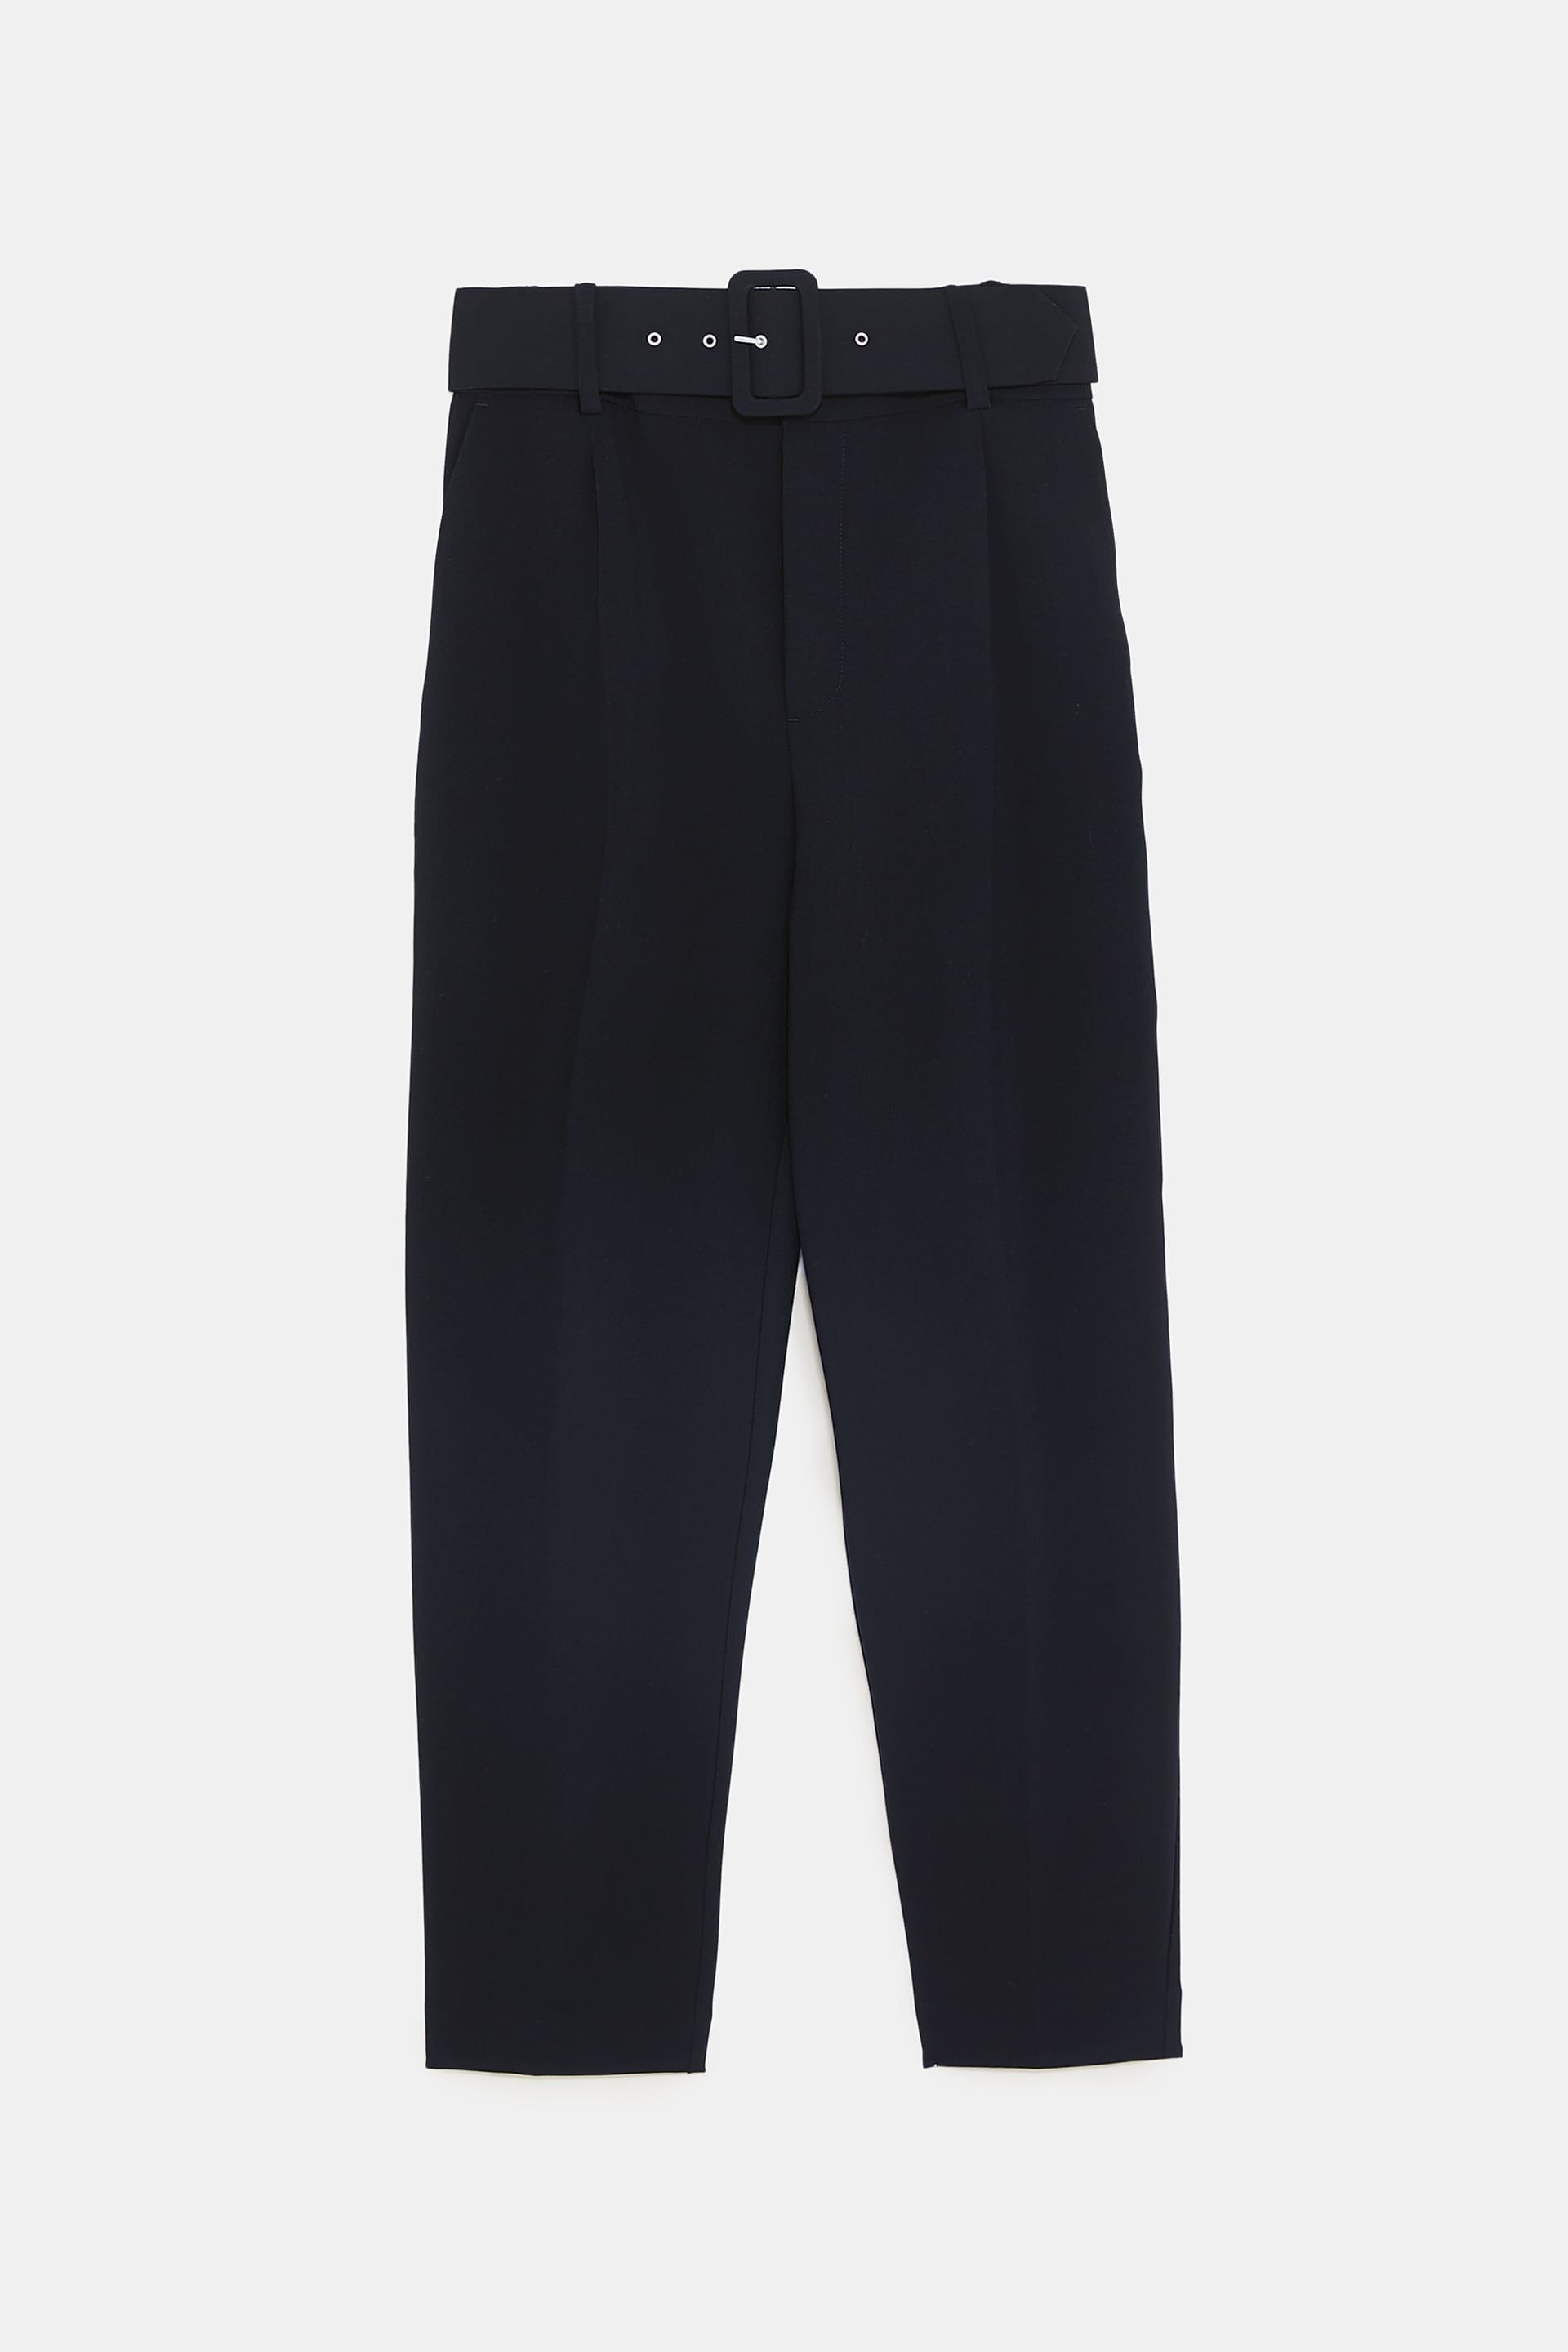 bb201804 High-waisted belted pants | Wardrobe Whishlist | Pleated pants ...